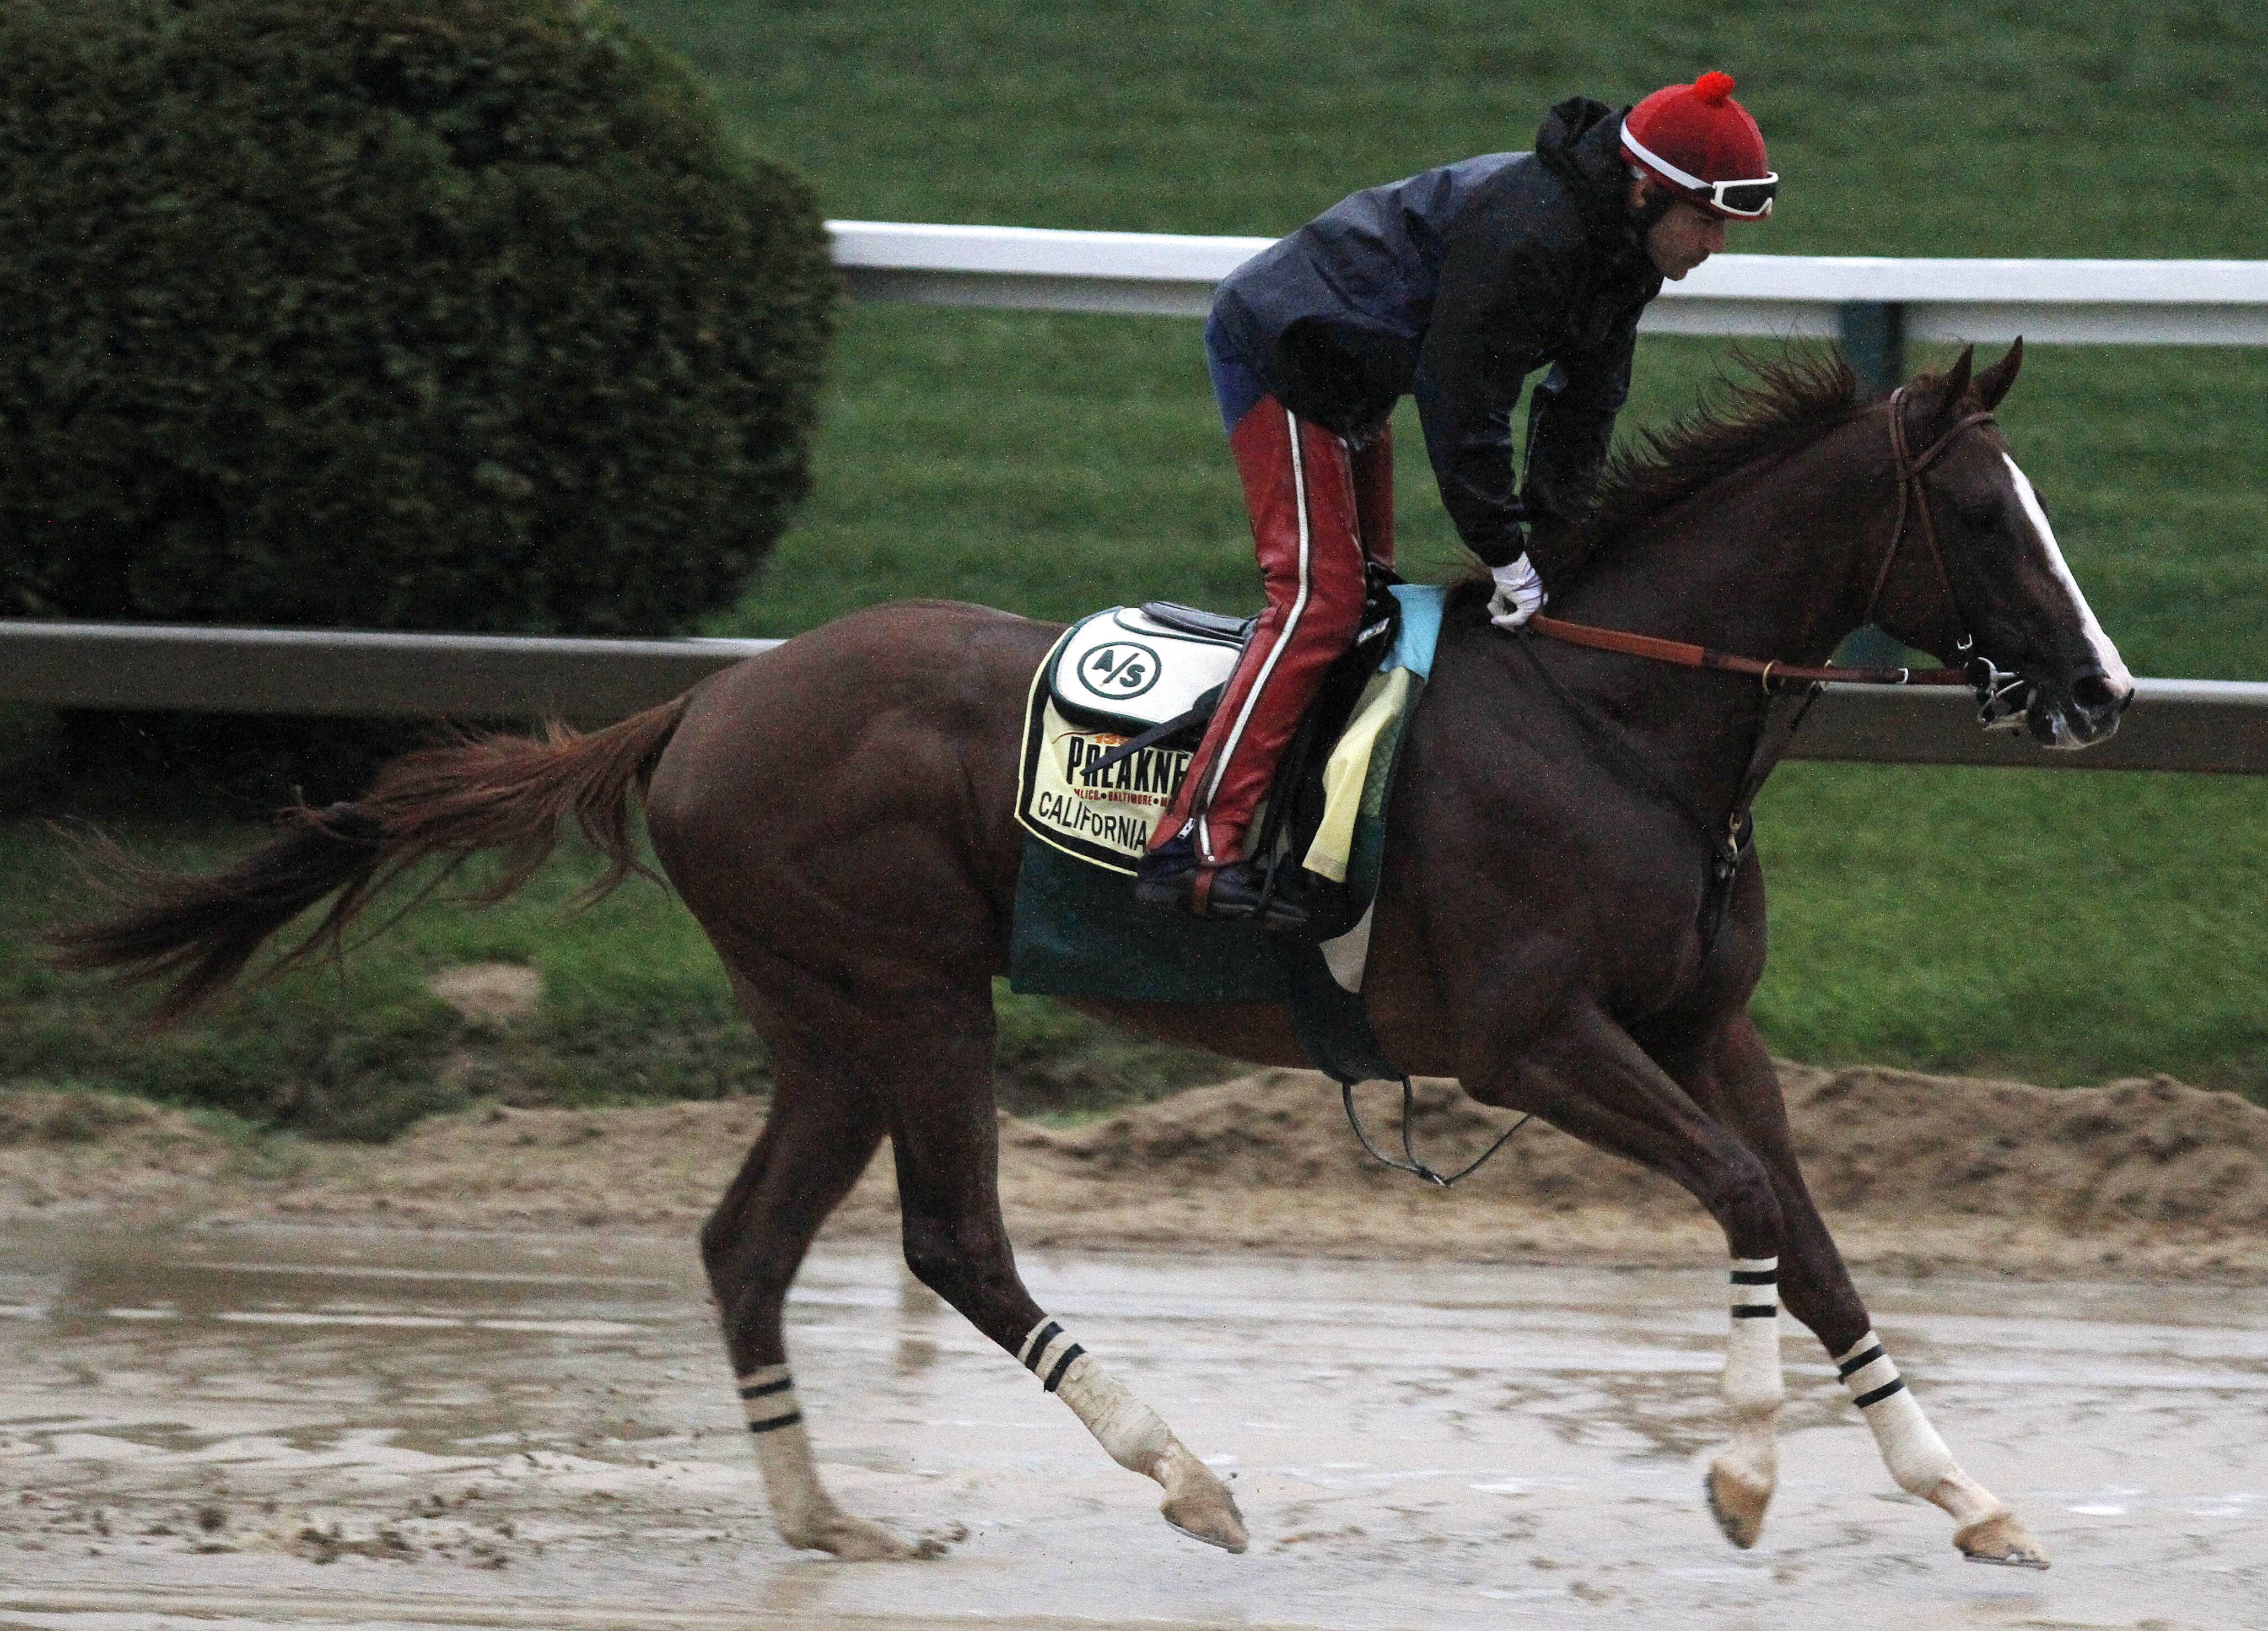 Preakness Stakes favorite California Chrome gallops in the rain under exercise rider Willie Delgado at Pimlico Race Course, Friday, May 16, 2014, in Baltimore. The 139th Preakness Stakes horse race takes place Saturday.